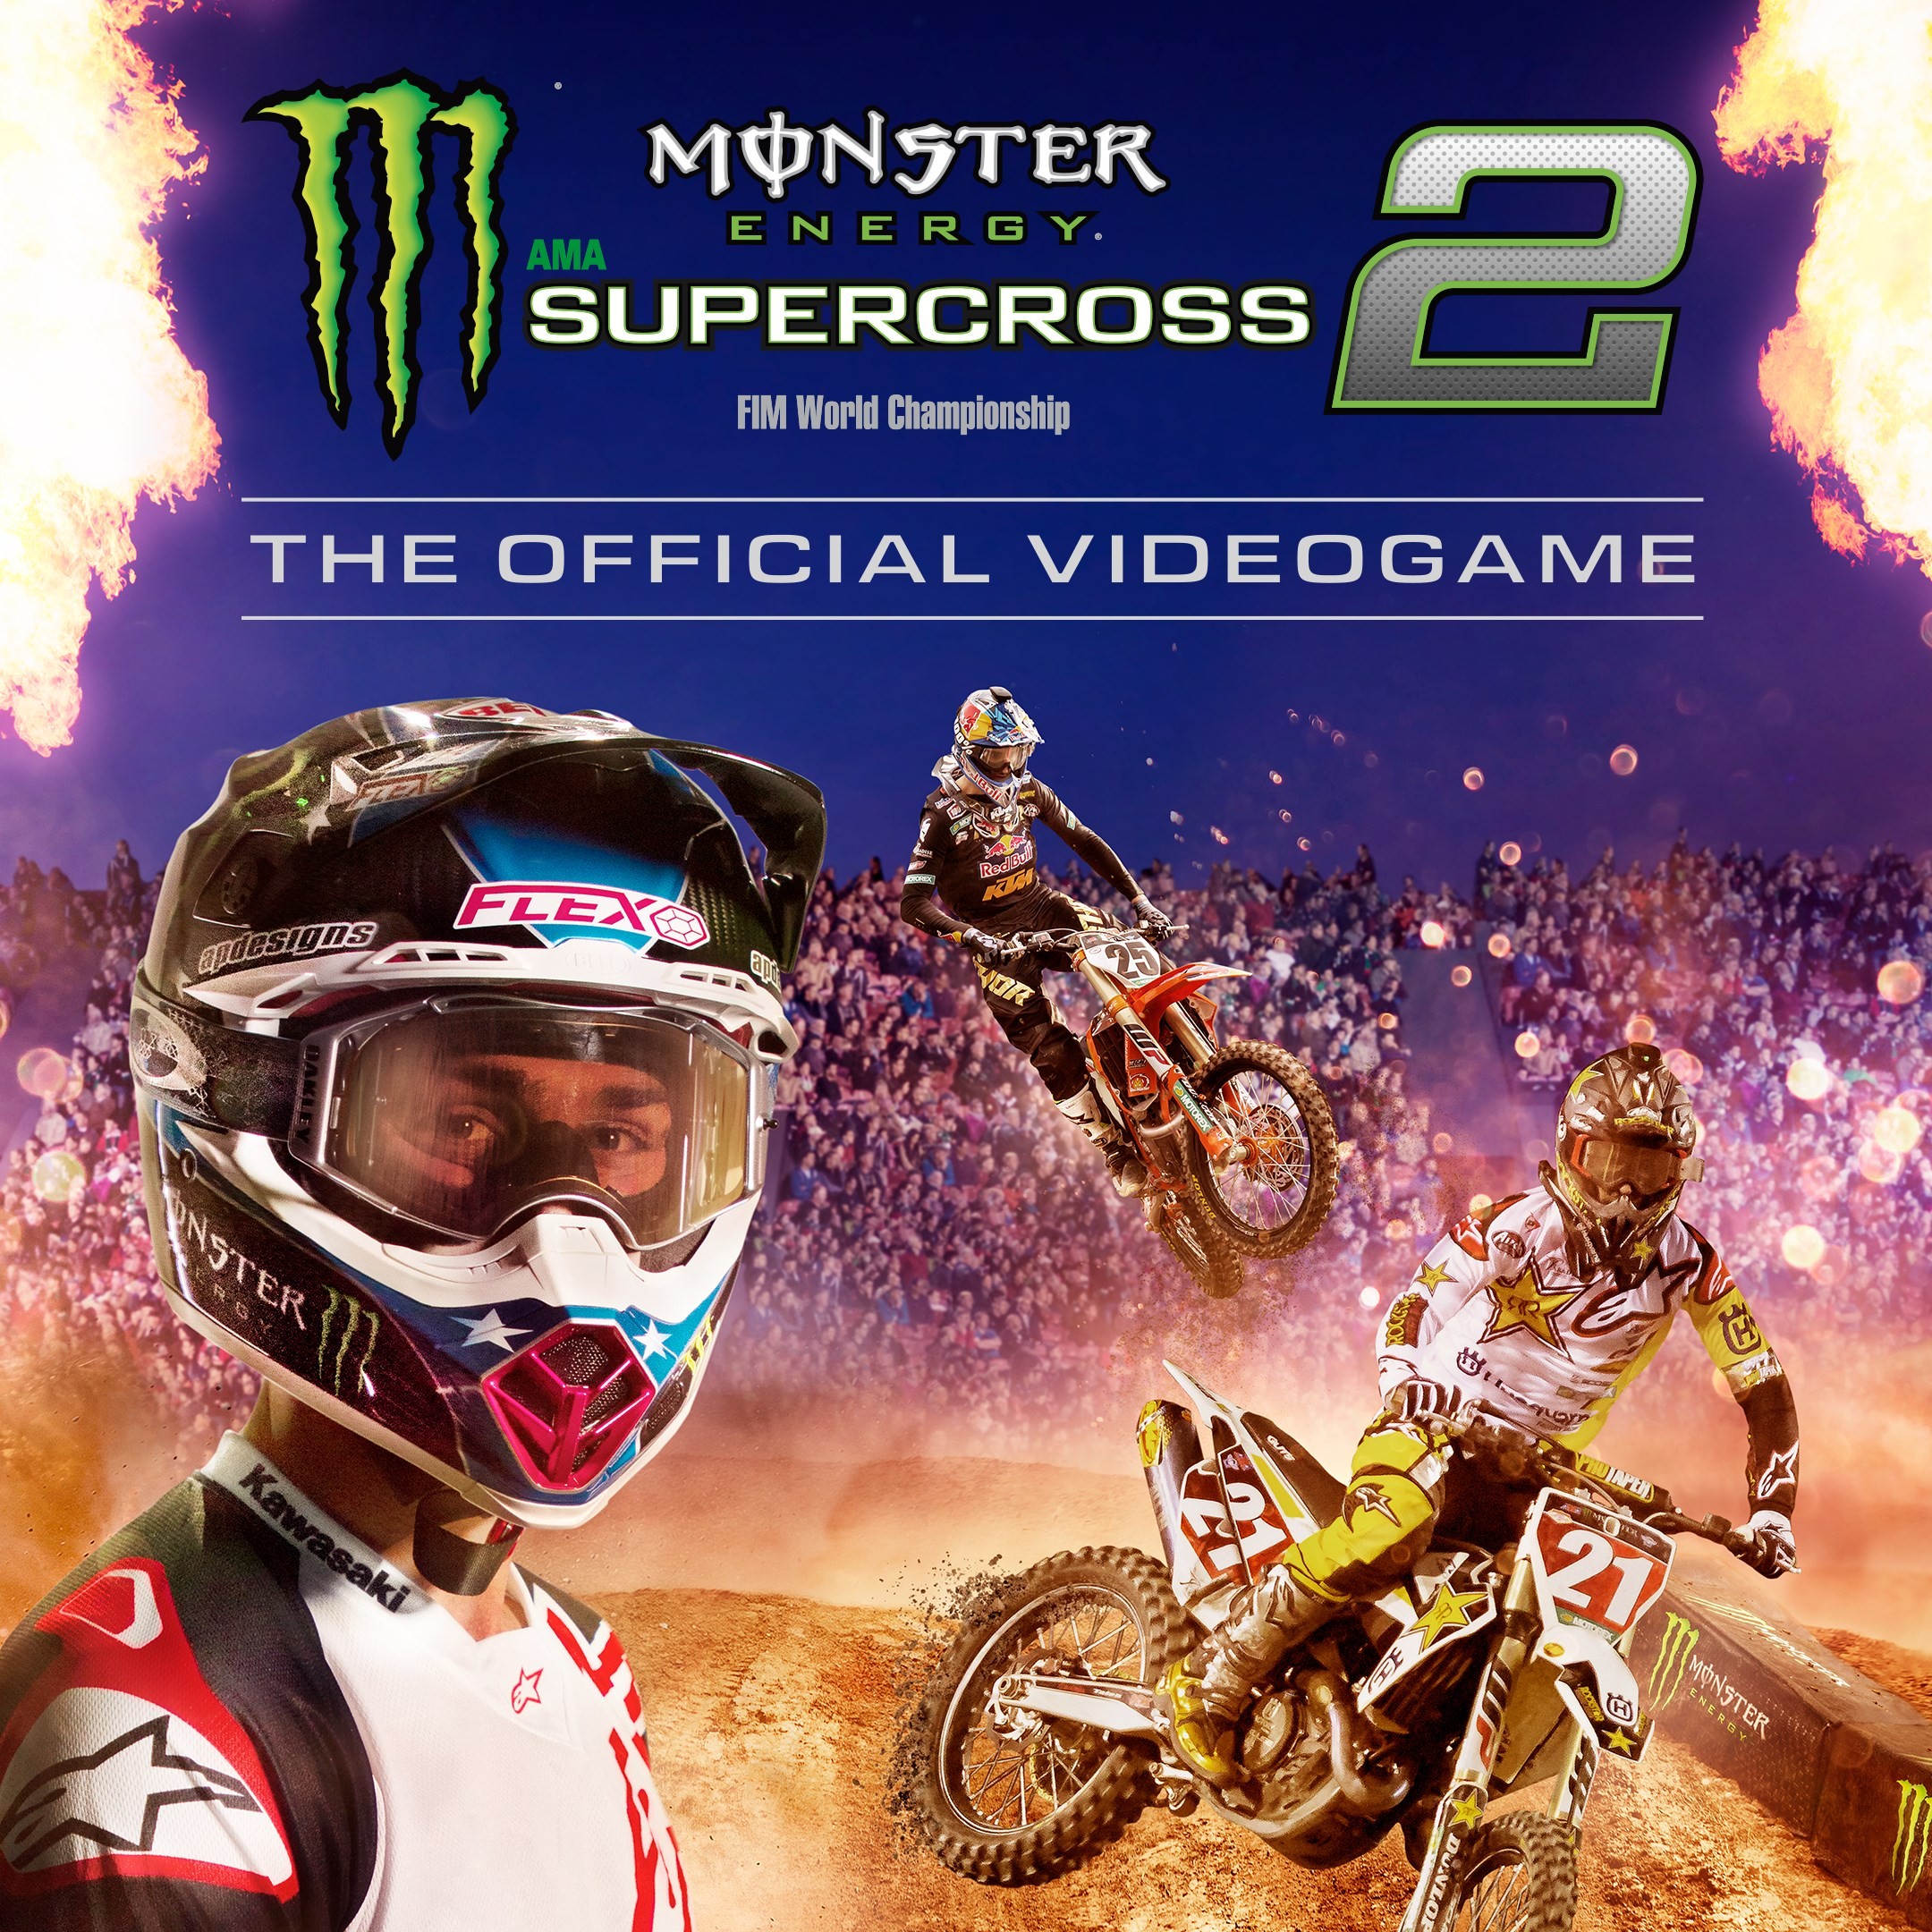 Monster Energy Supercross — The Official Videogame 2